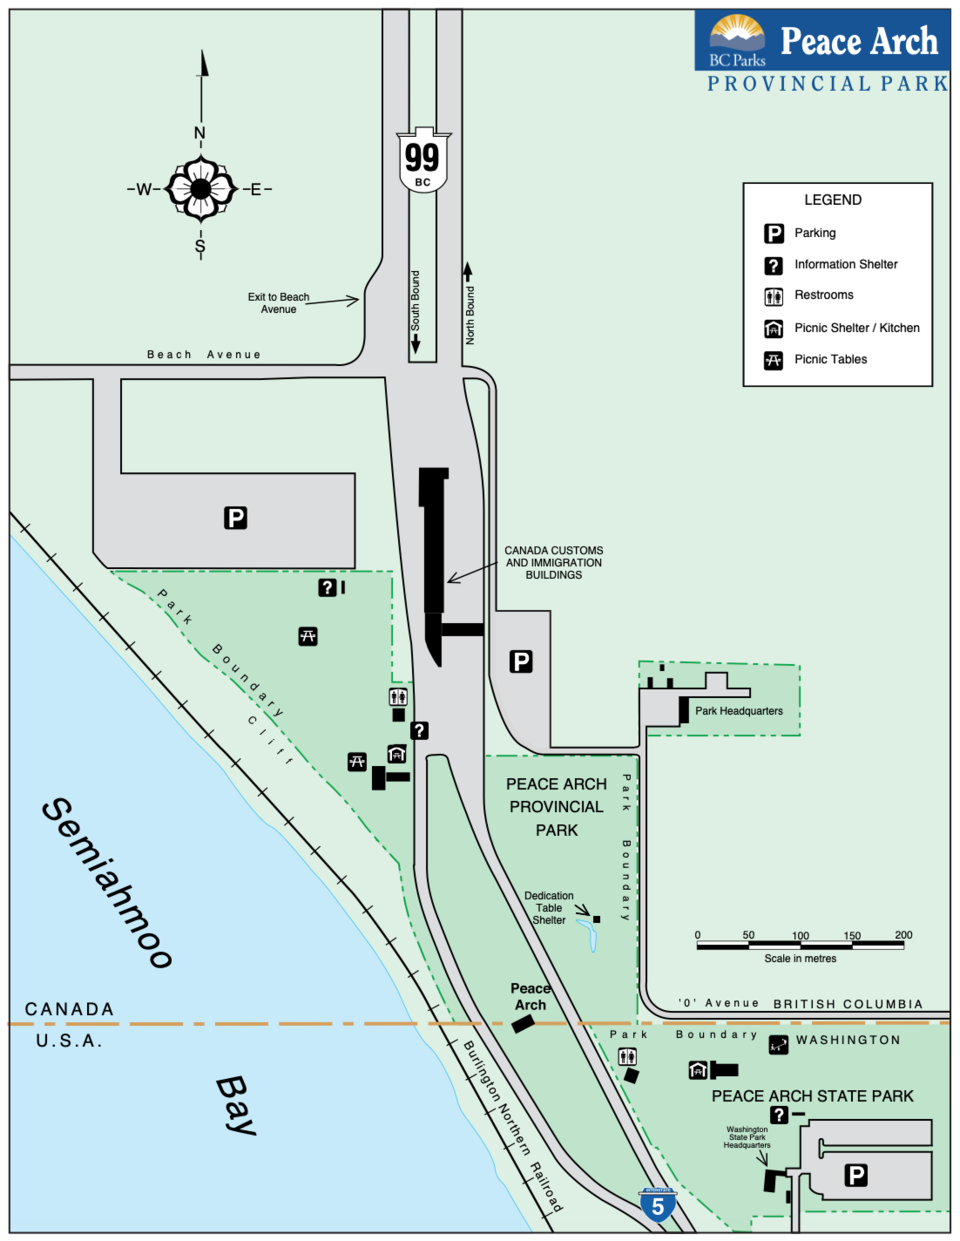 PEACE ARCH PARK MAP Screen Shot 2020-05-23 at 4.12.43 PM